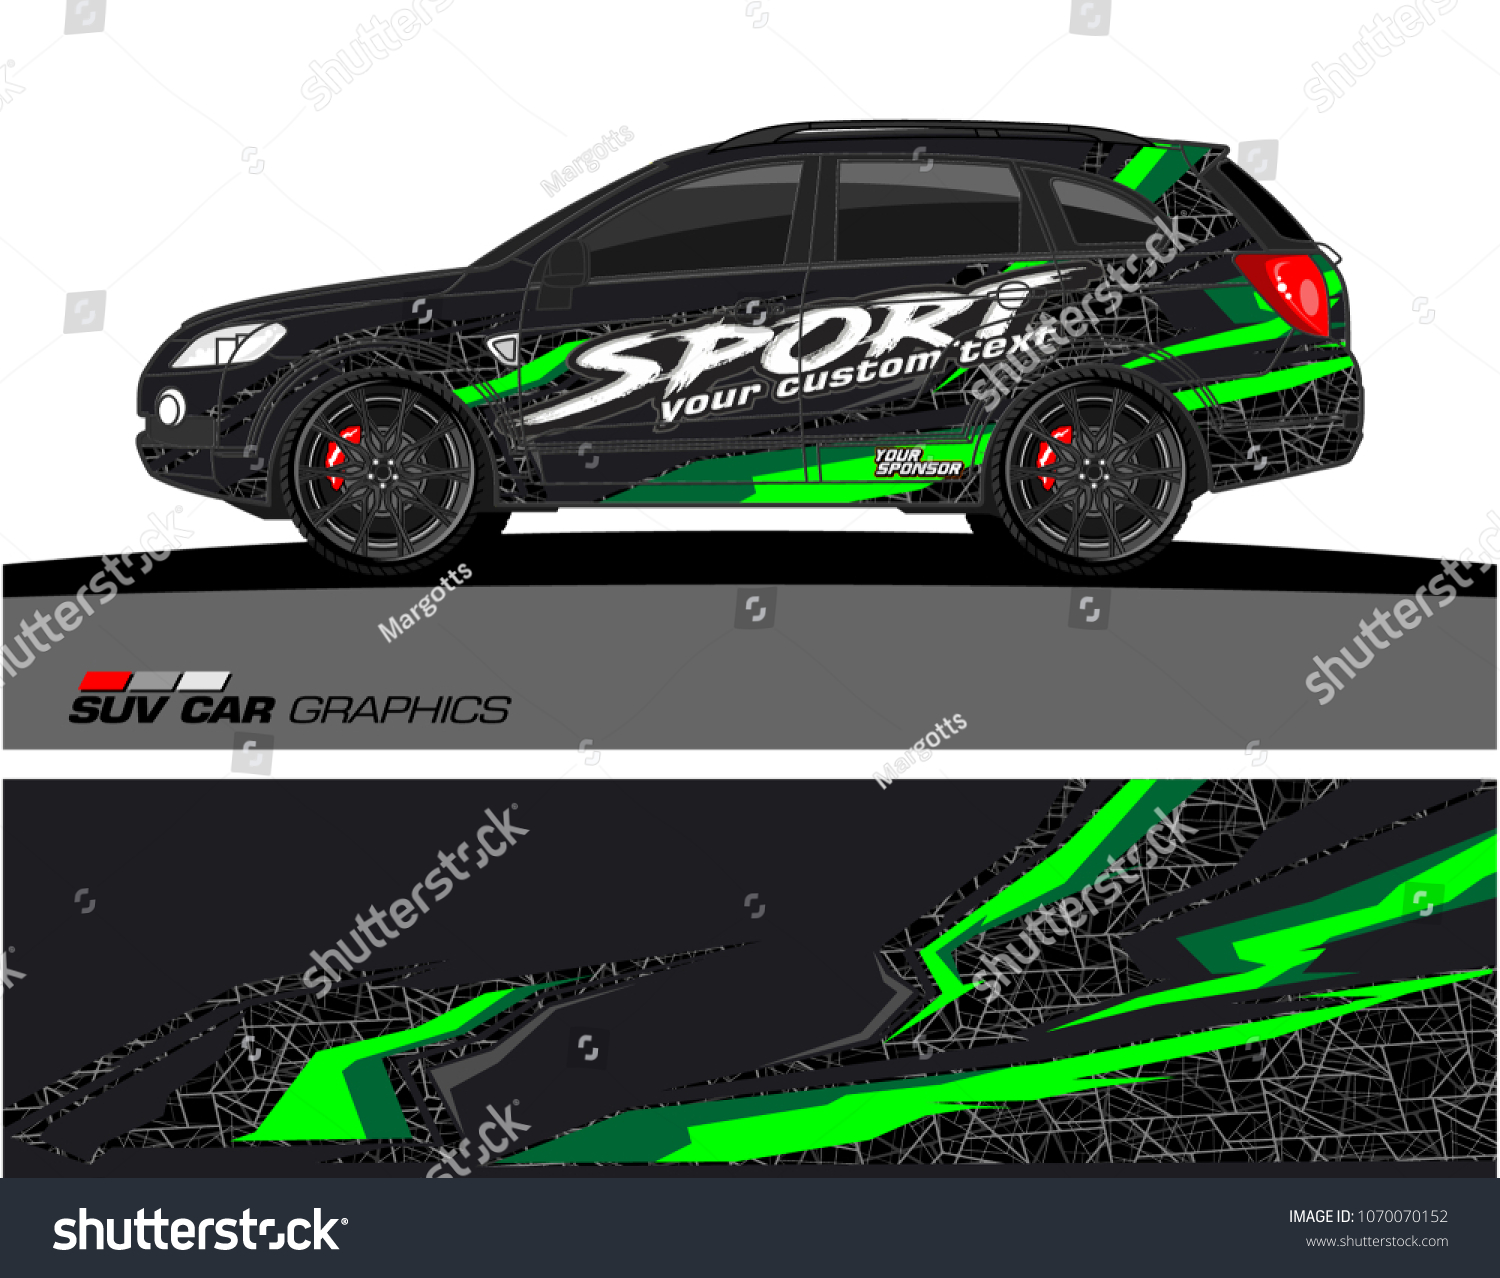 Vehicle graphics for suv wrap design and sticker branding